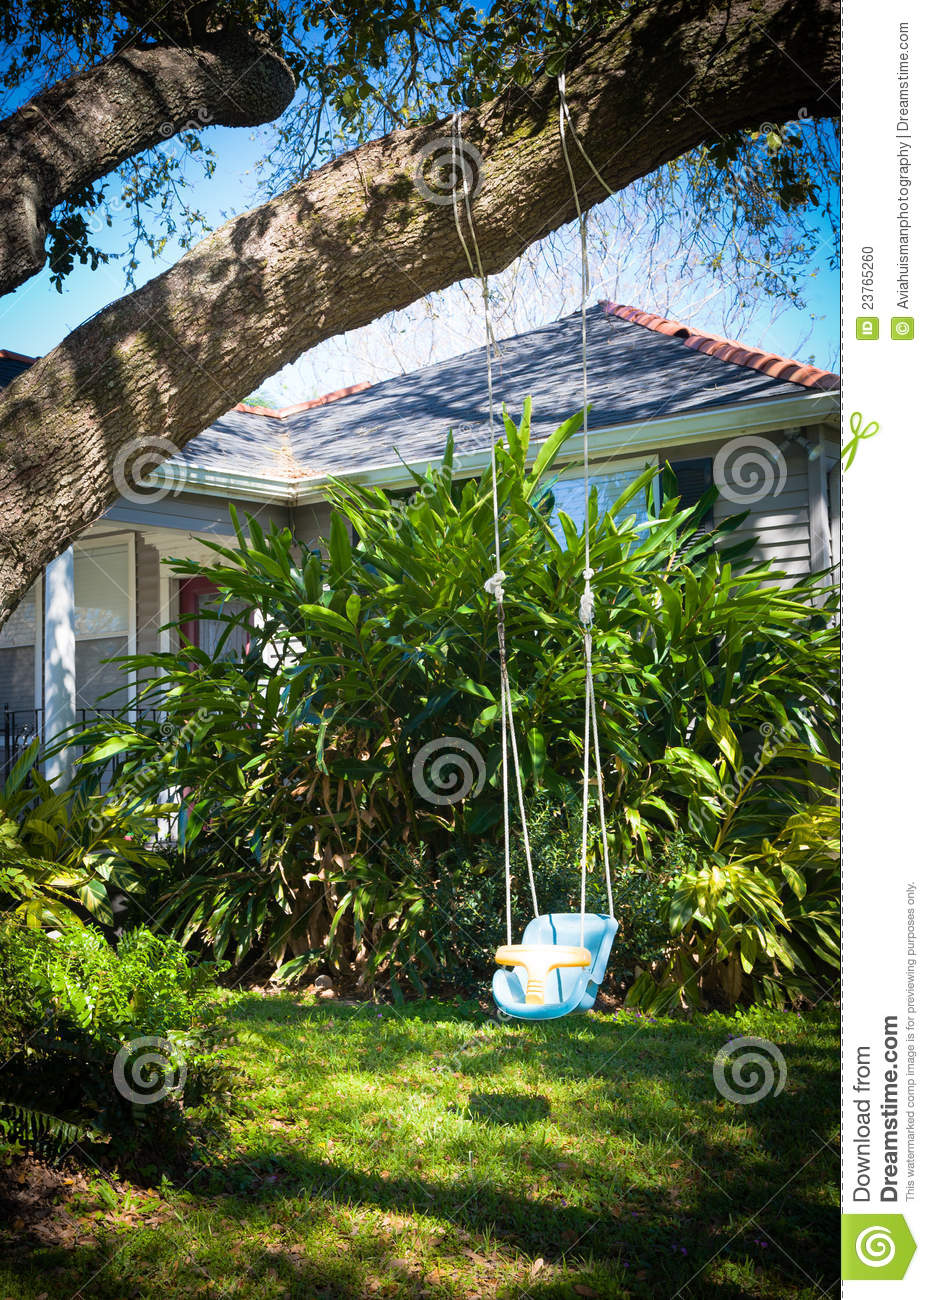 How To Hang A Baby Swing From A Tree : swing, Swing, Garden, Stock, Photo., Image, Playing, 23765260